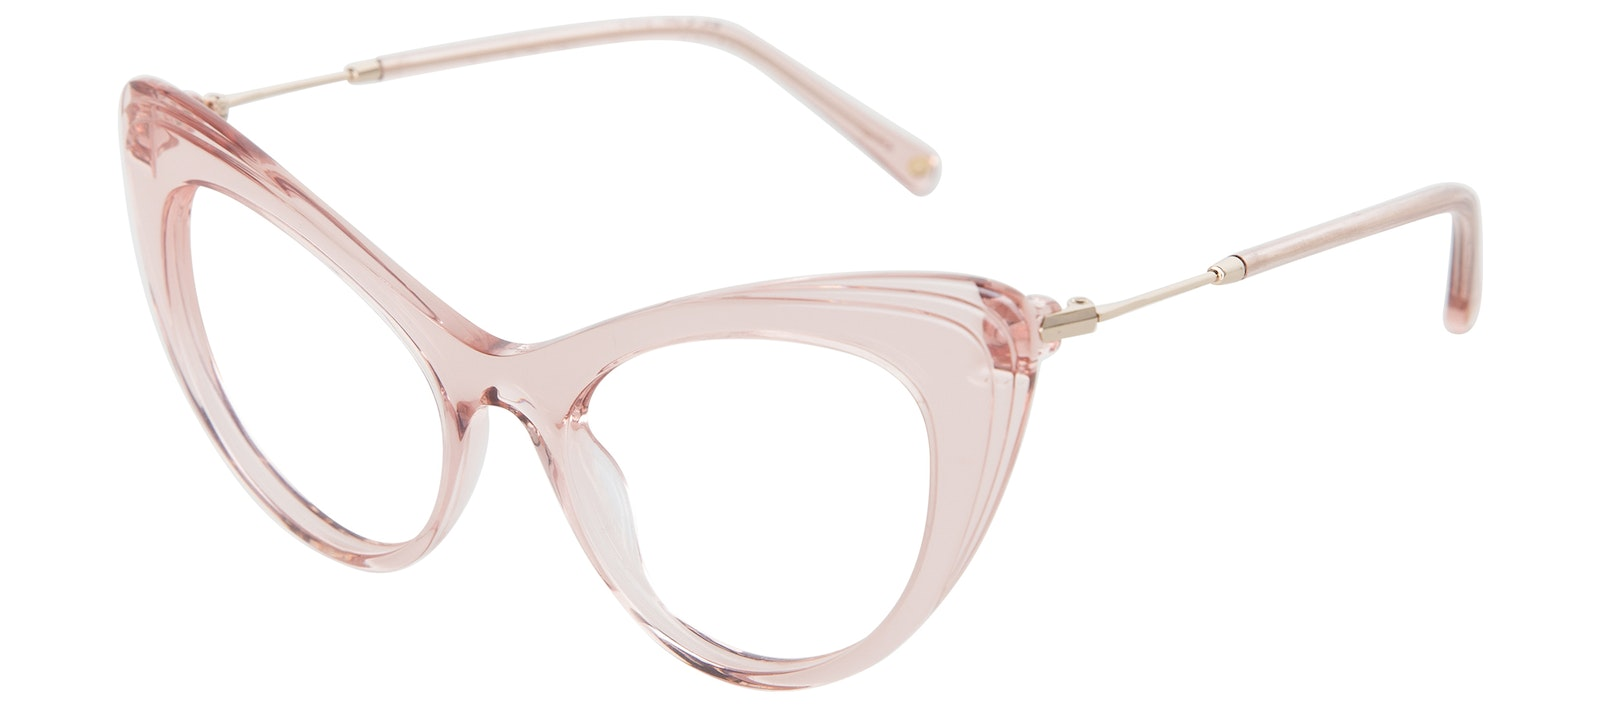 Affordable Fashion Glasses Cat Eye Eyeglasses Women Keiko-Chan Sakura Tilt